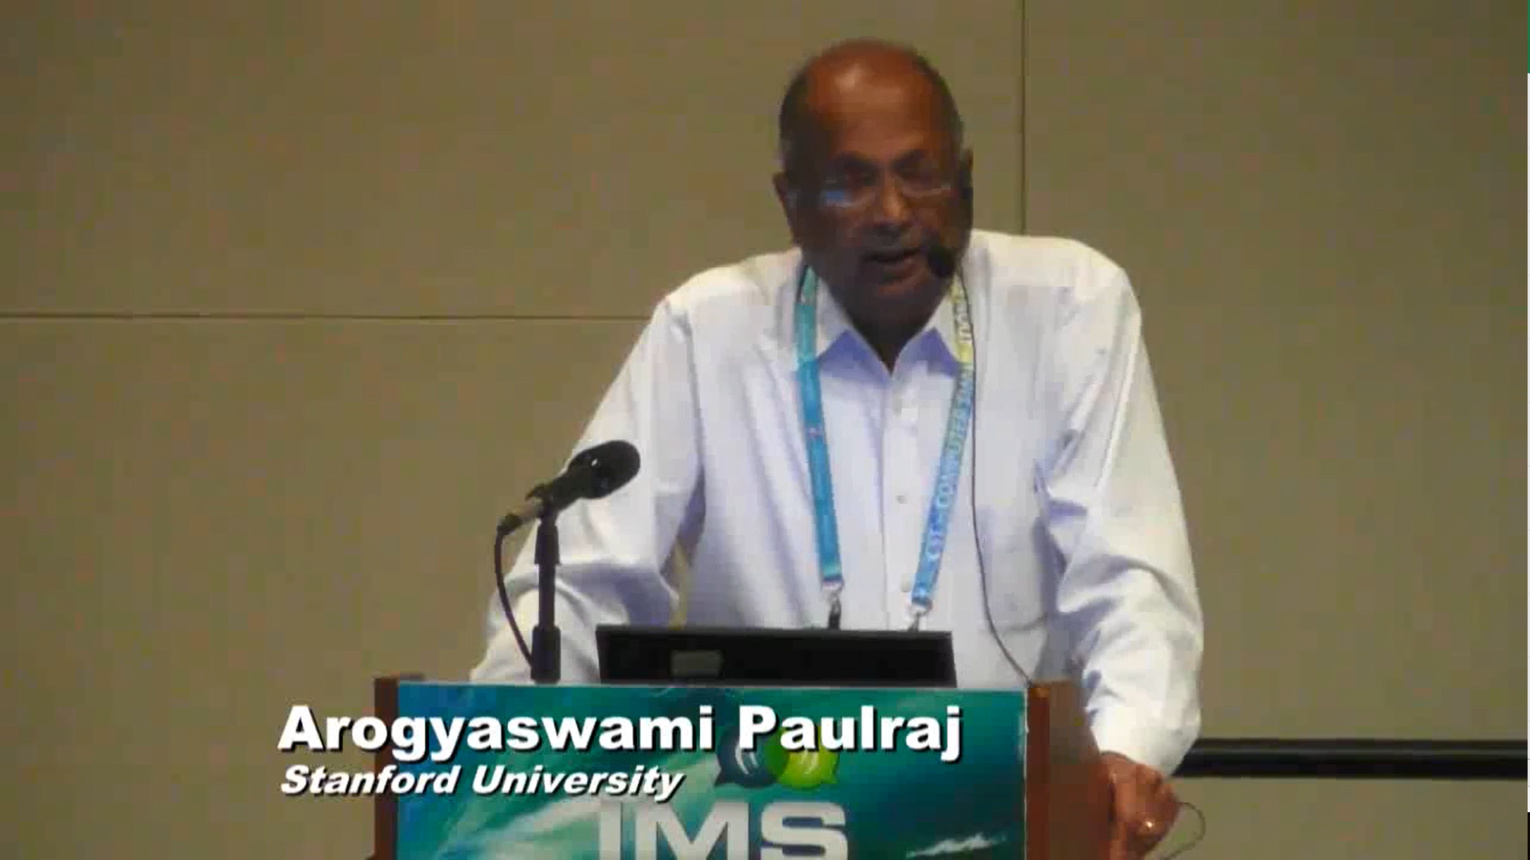 Keynote: Emerging Research Tracks in Massive MIMO